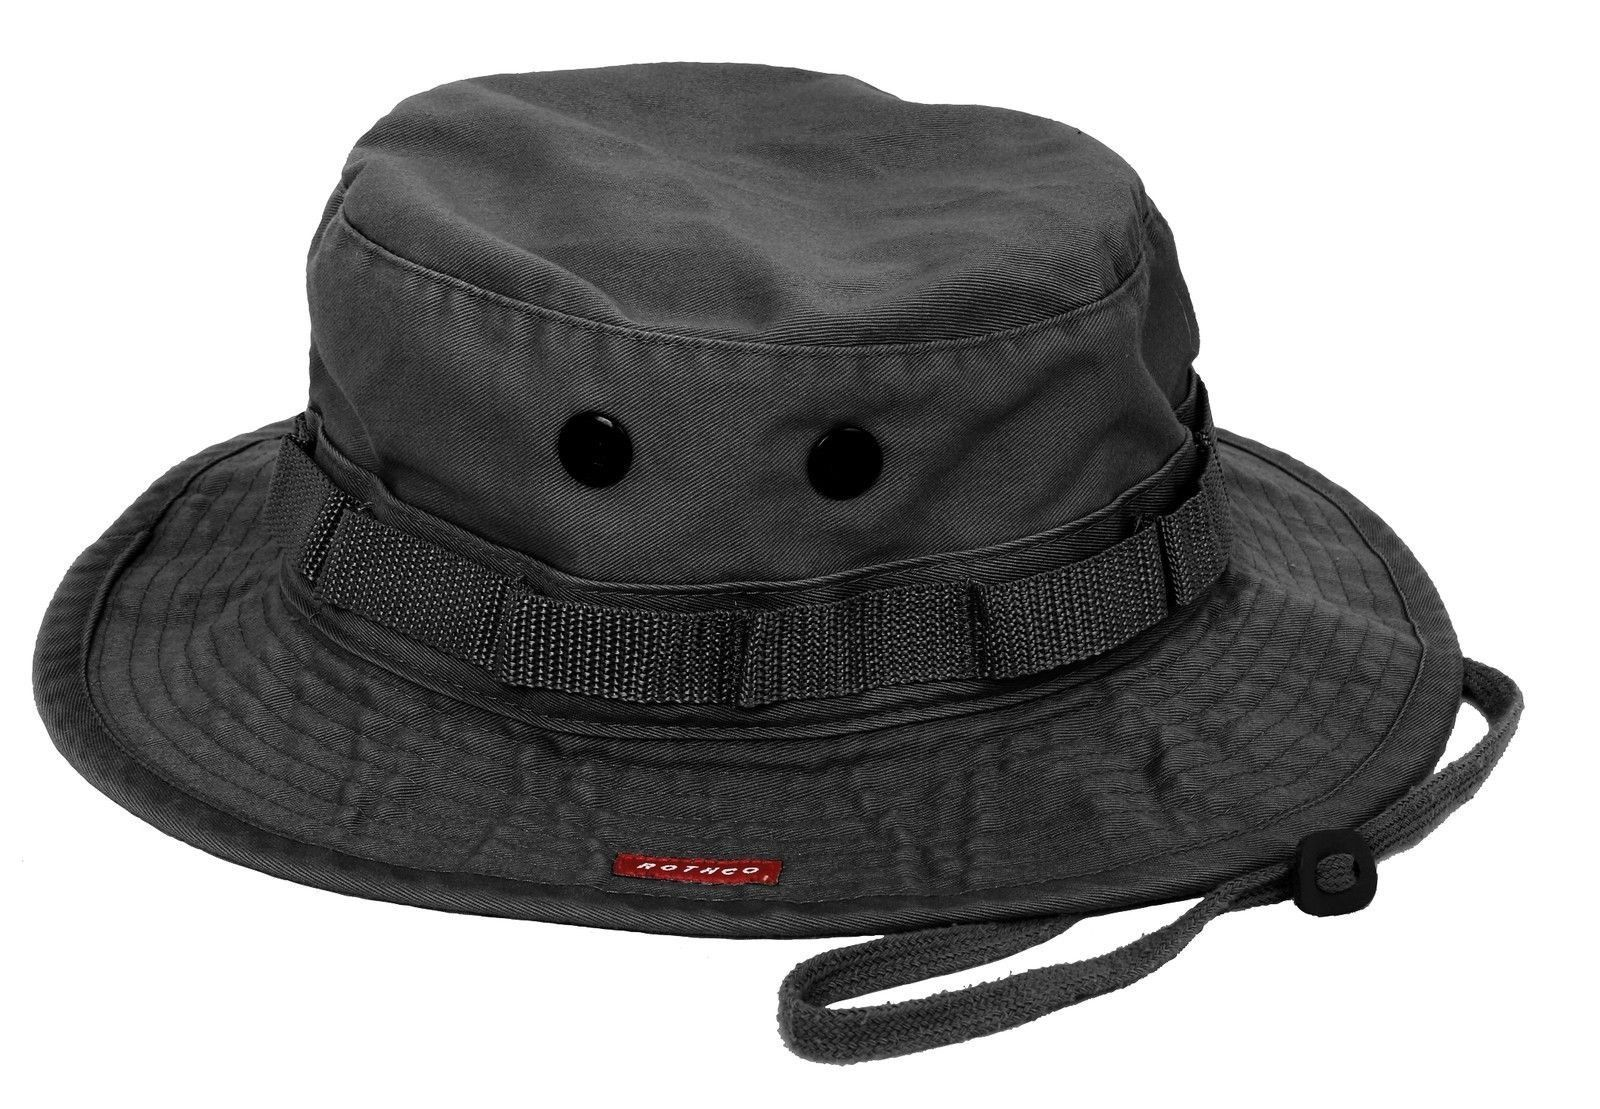 193cb0e8f9ab Military Boonie Hat - Vintage Black Breathable Camping, Fishing, Bucket Hat